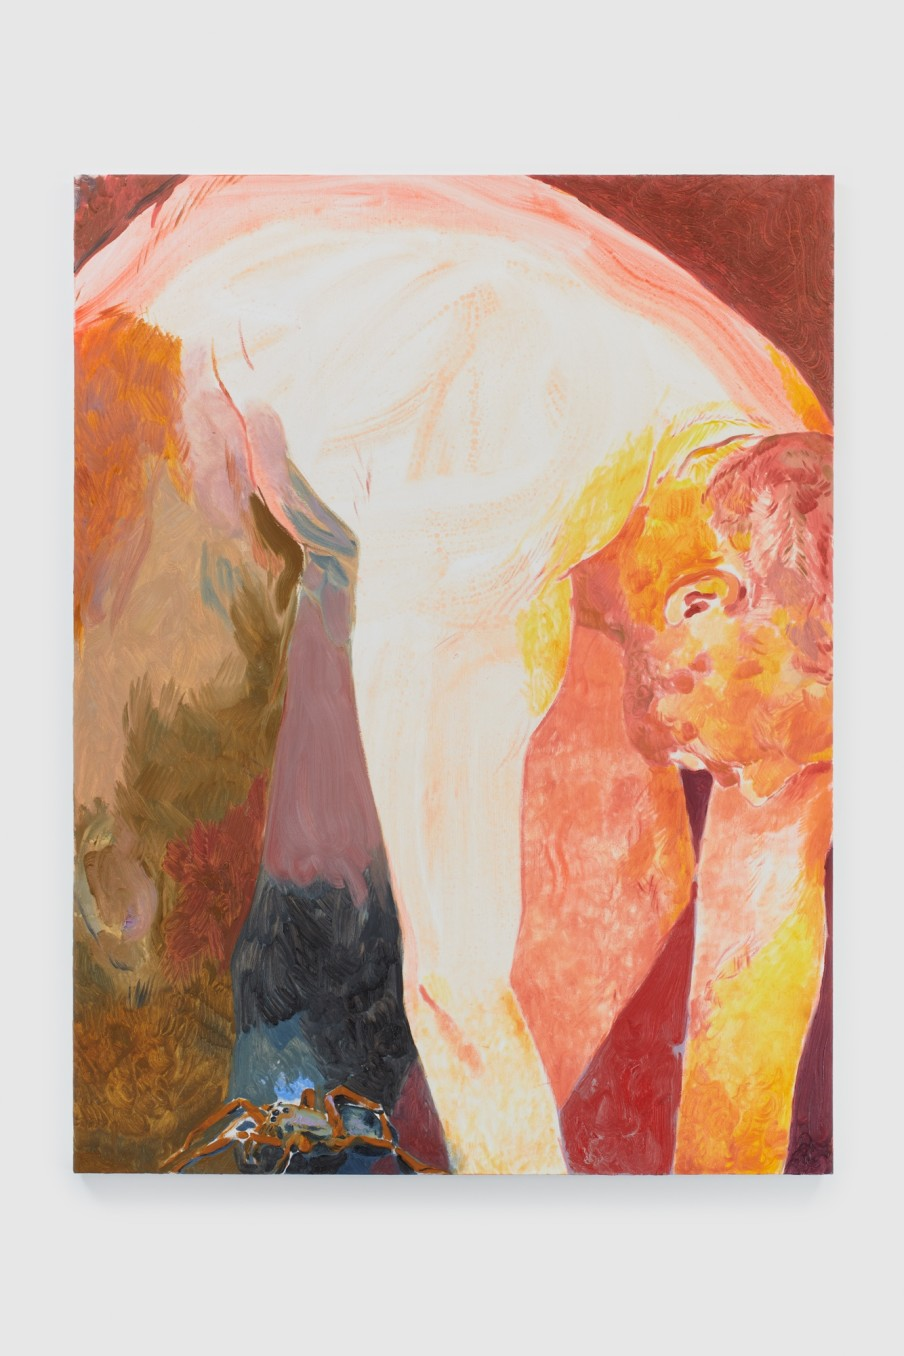 Anthony Cudahy crouched, 2021 Acrylic and oil on canvas 121.9 x 91.4 cm 48 x 36 in